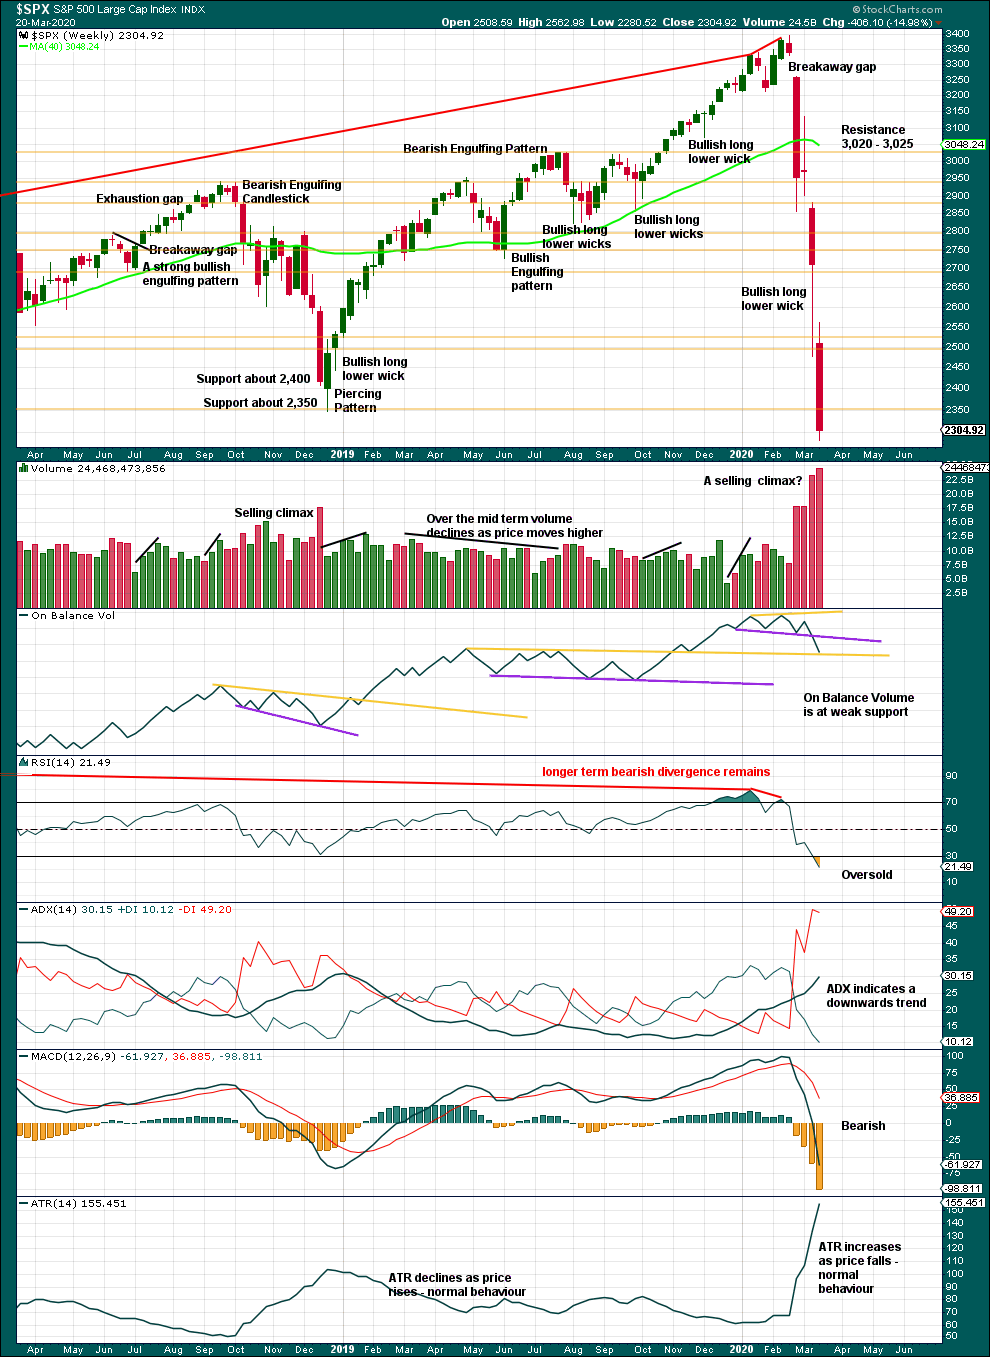 S&P 500 Weekly 2020